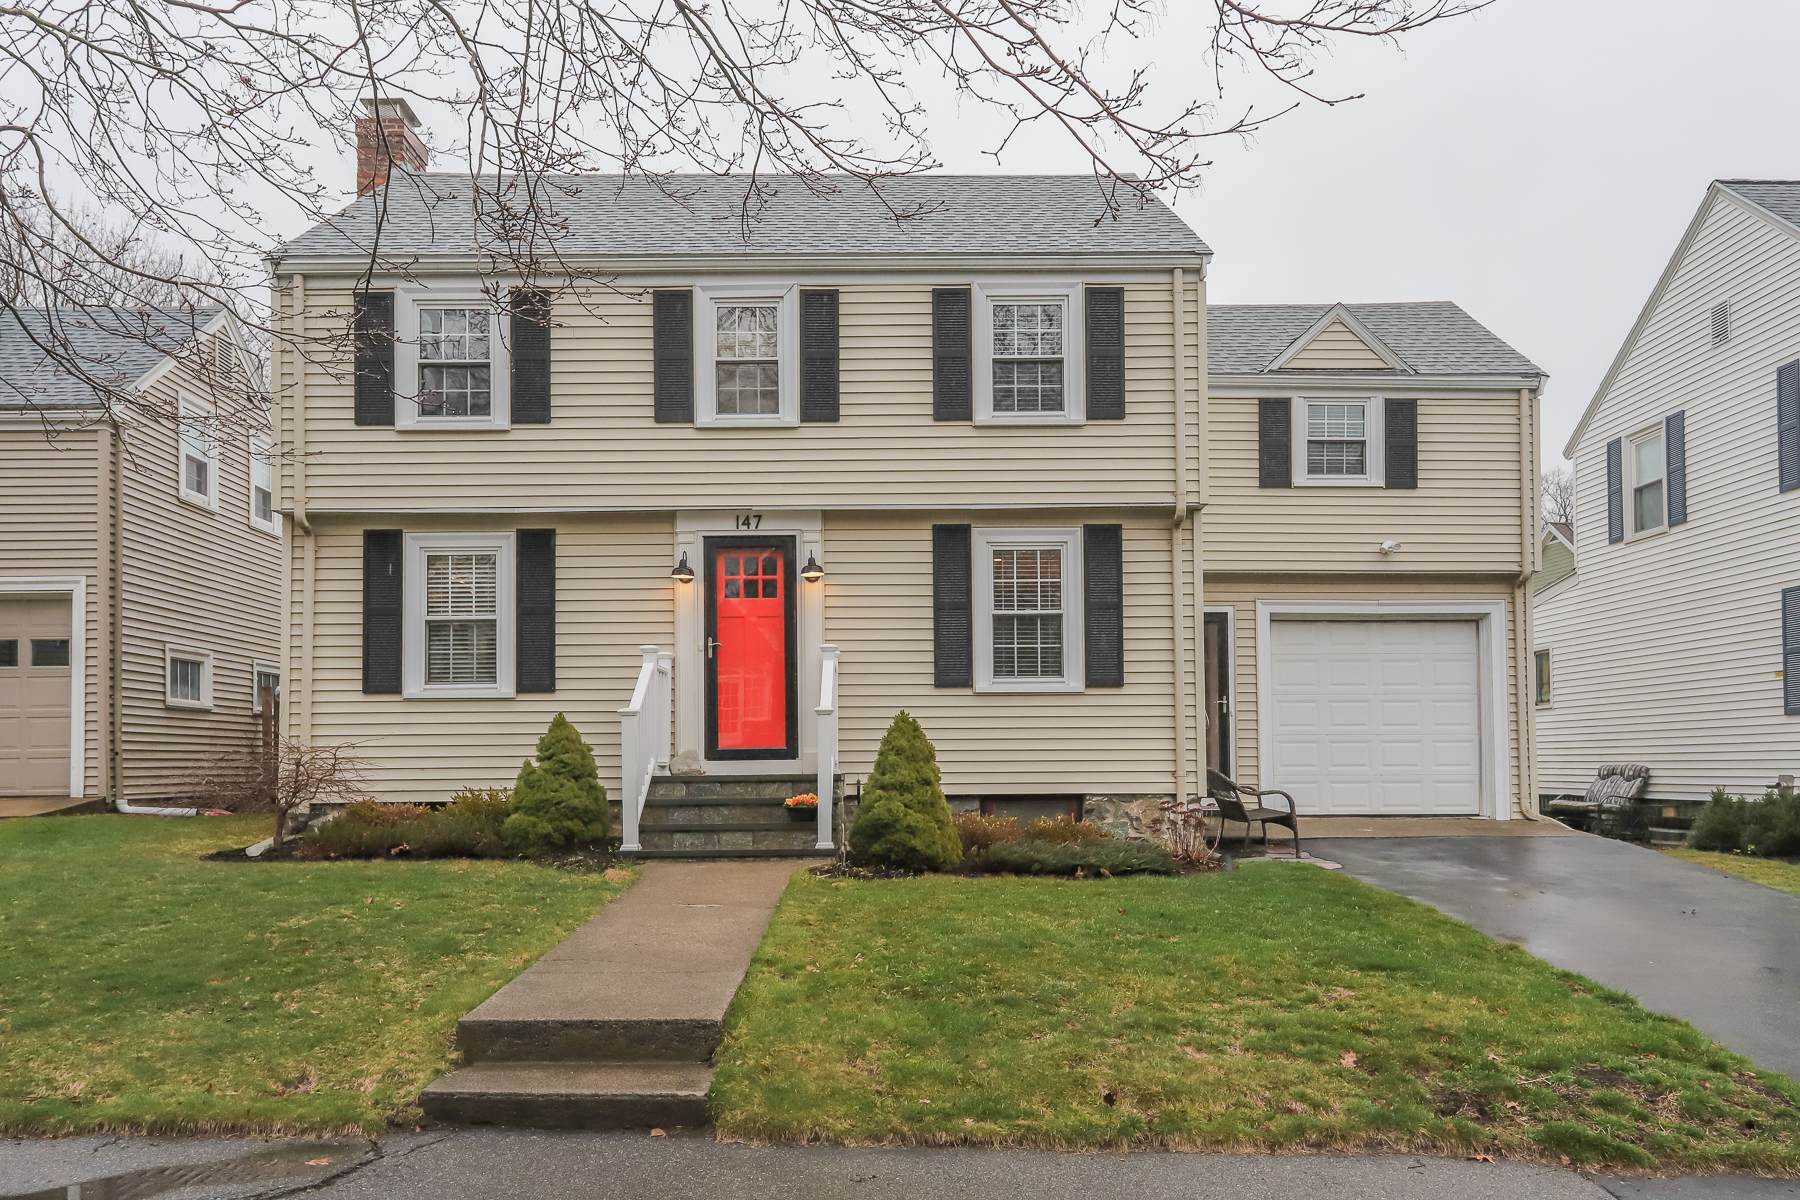 Single Family Home for Active at Traditional center hall colonial 147 Aspen Road Swampscott, Massachusetts 01907 United States